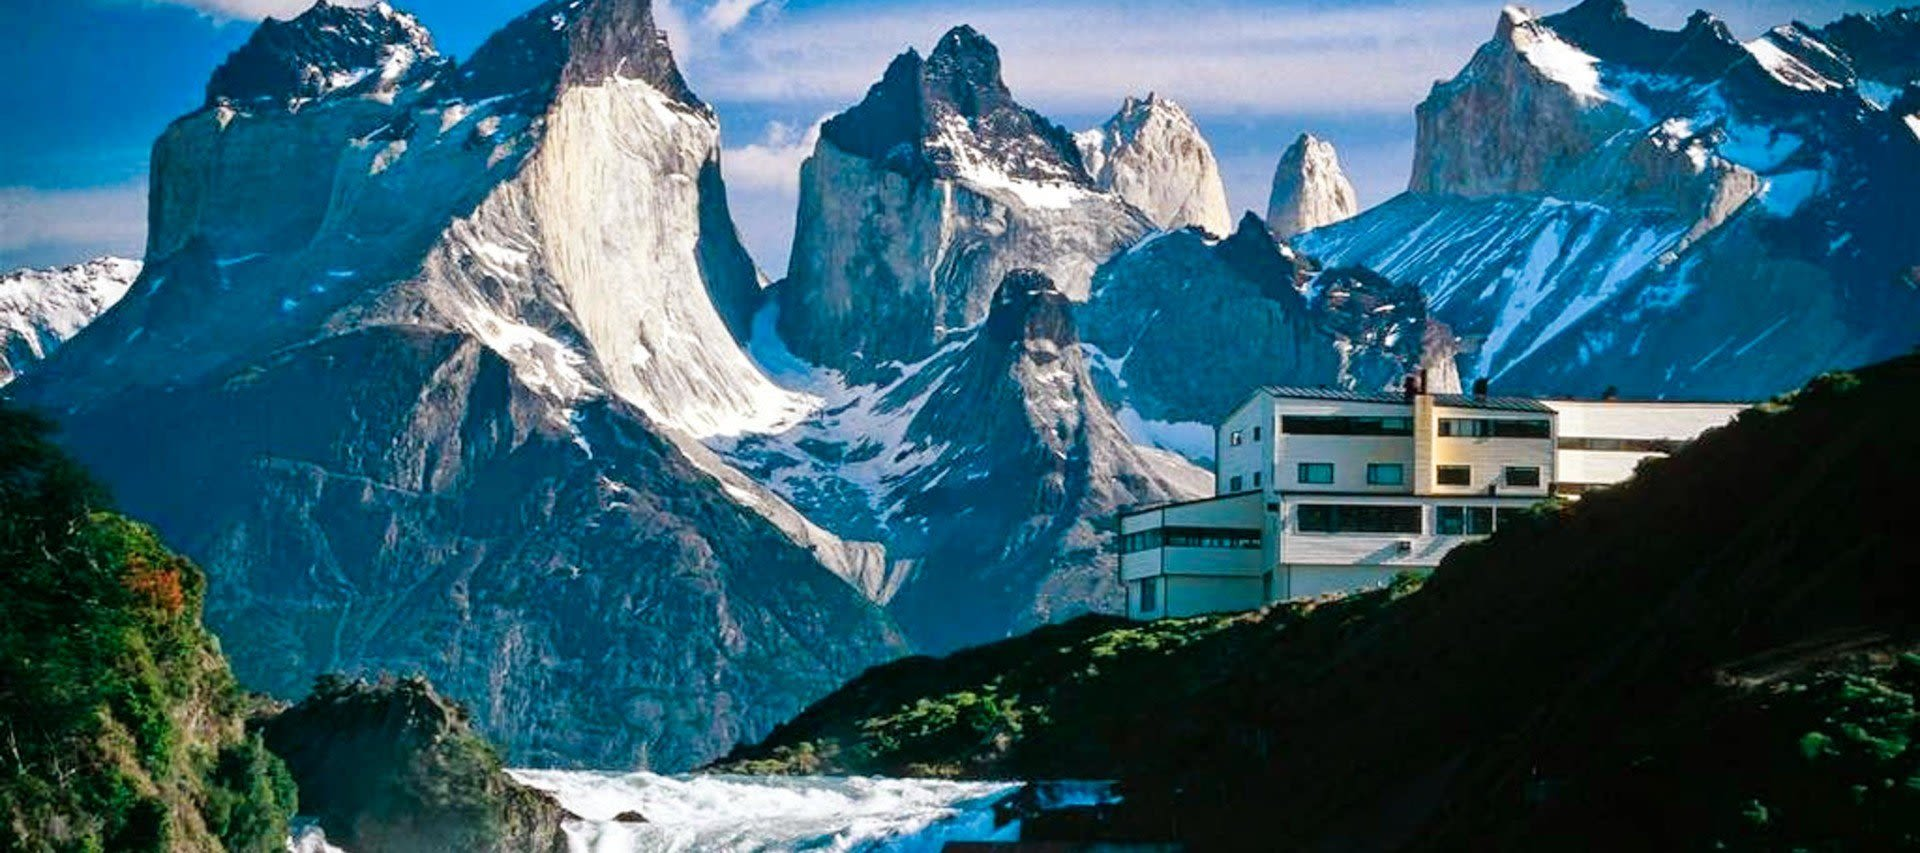 Modern Patagonia hotel deep in the mountains